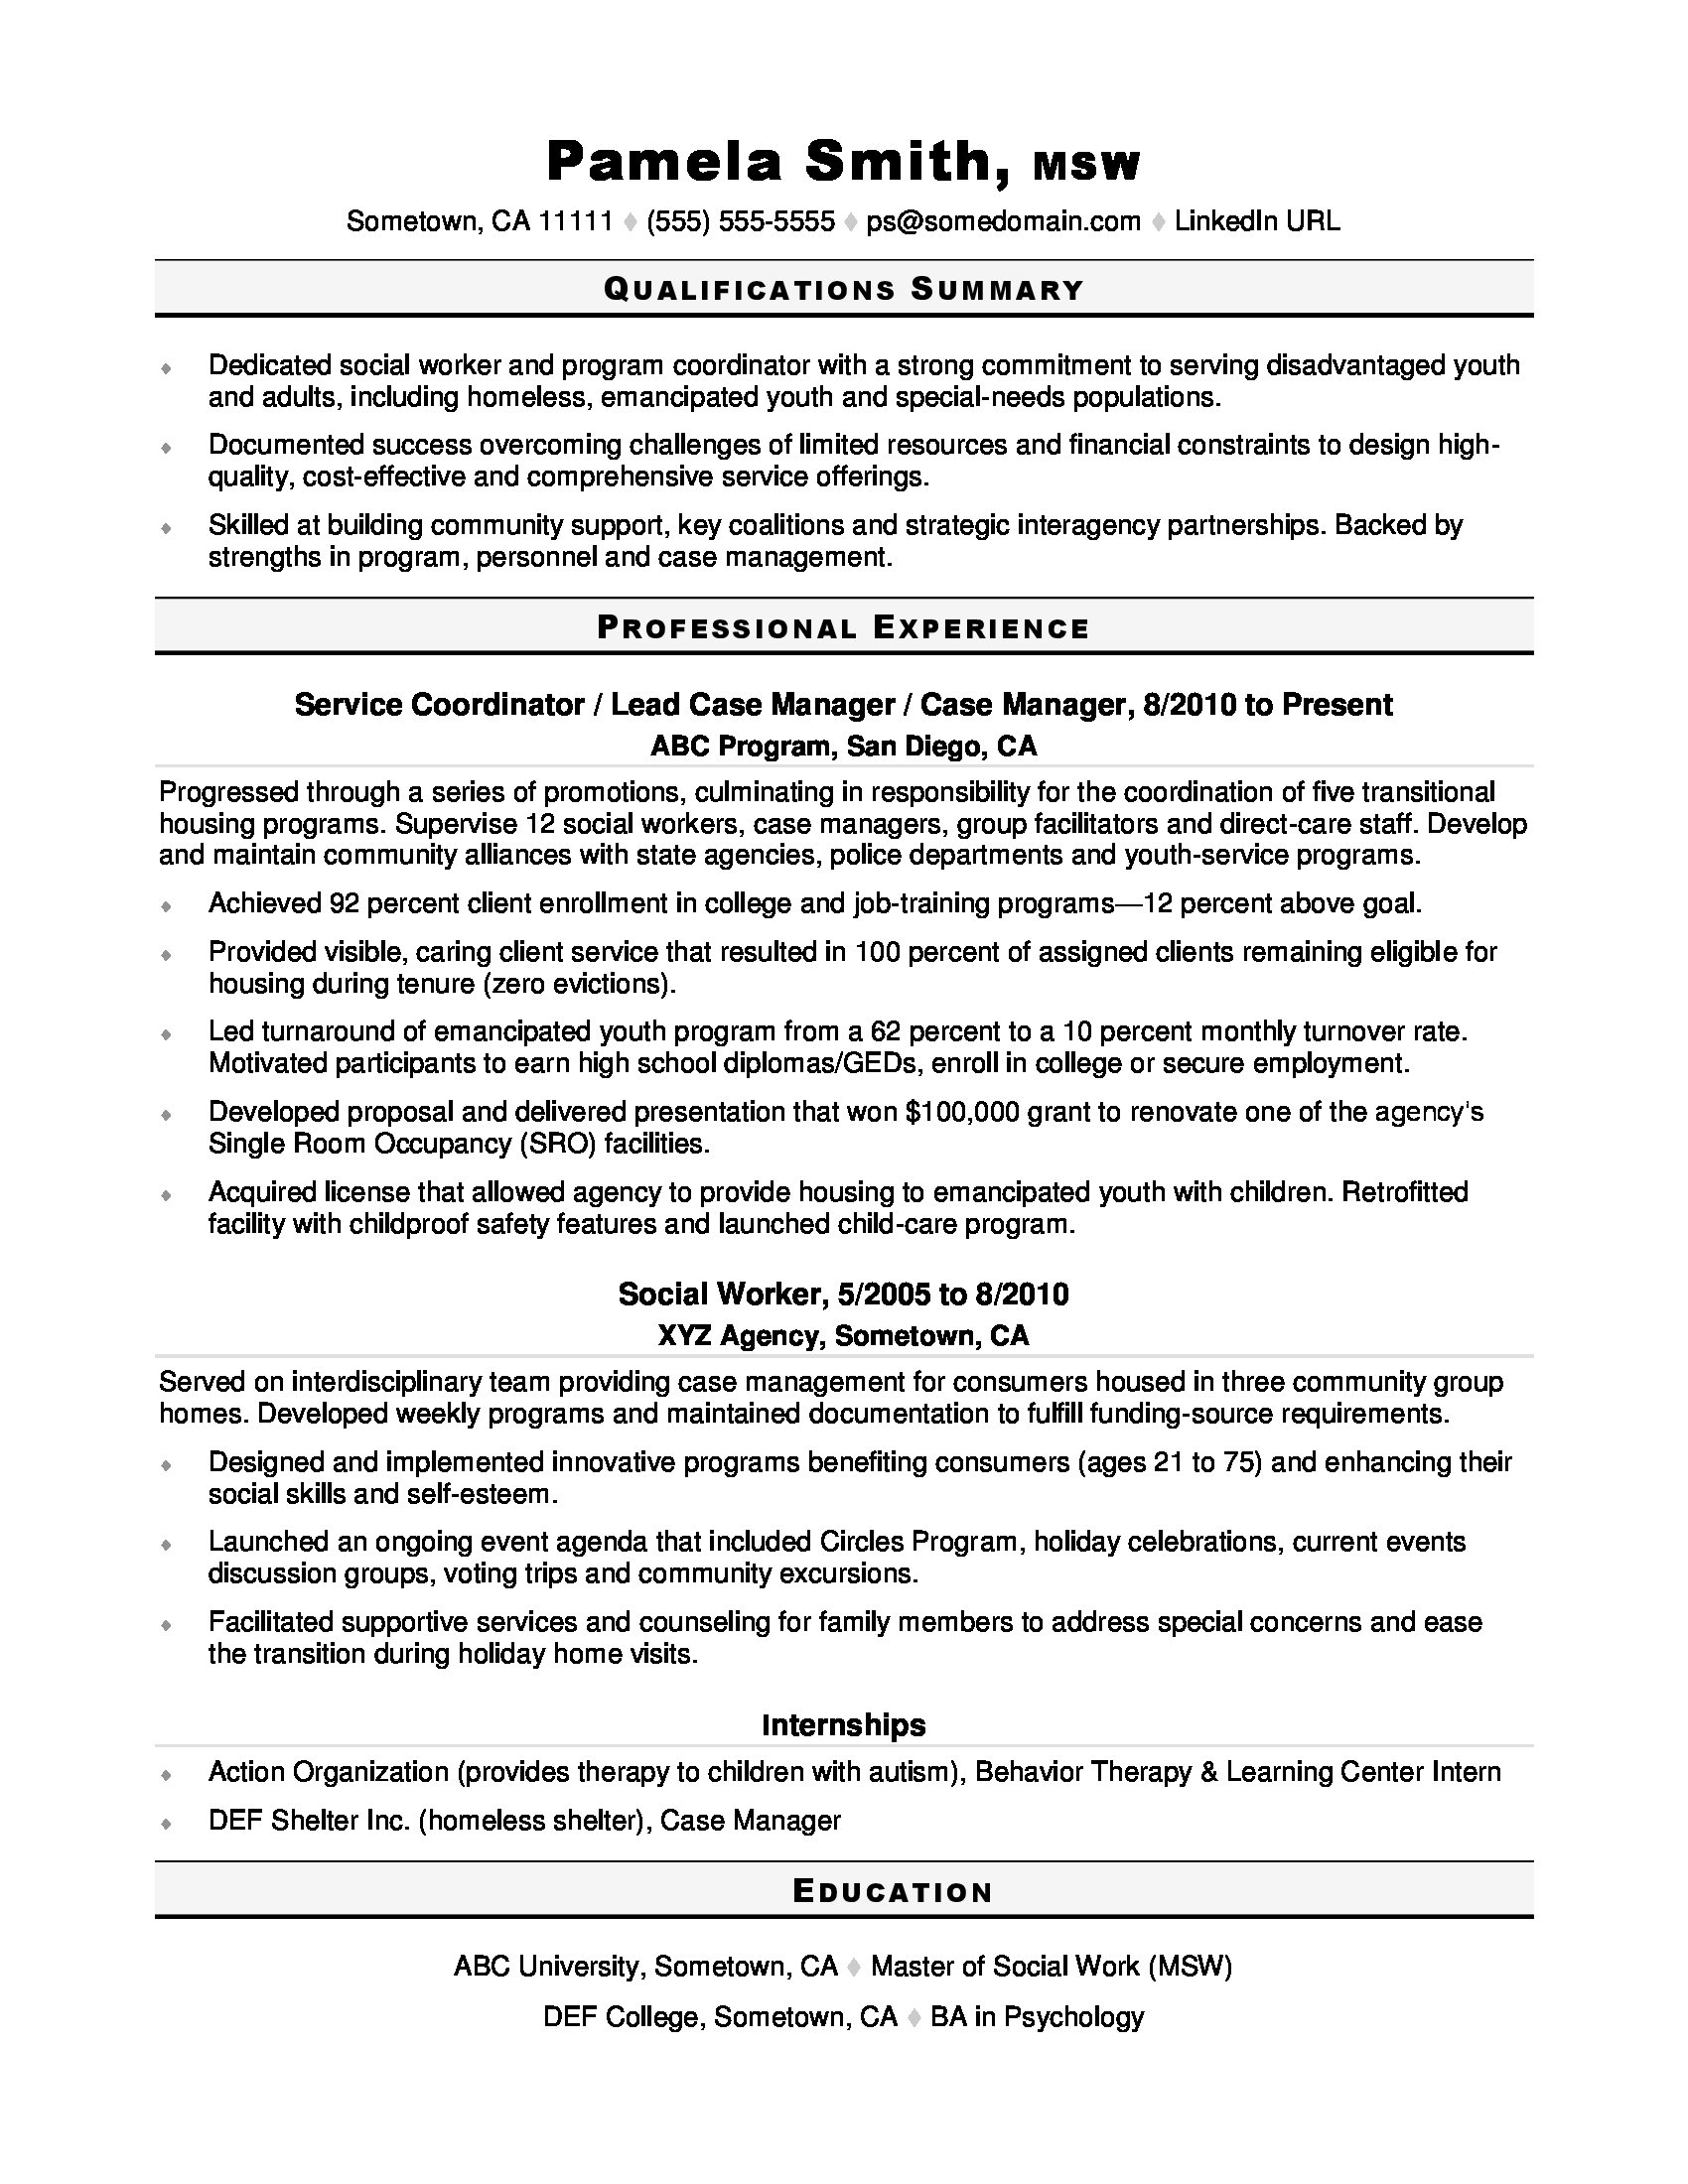 social worker resume sample monster remote work template electronic engineering Resume Remote Work Resume Template